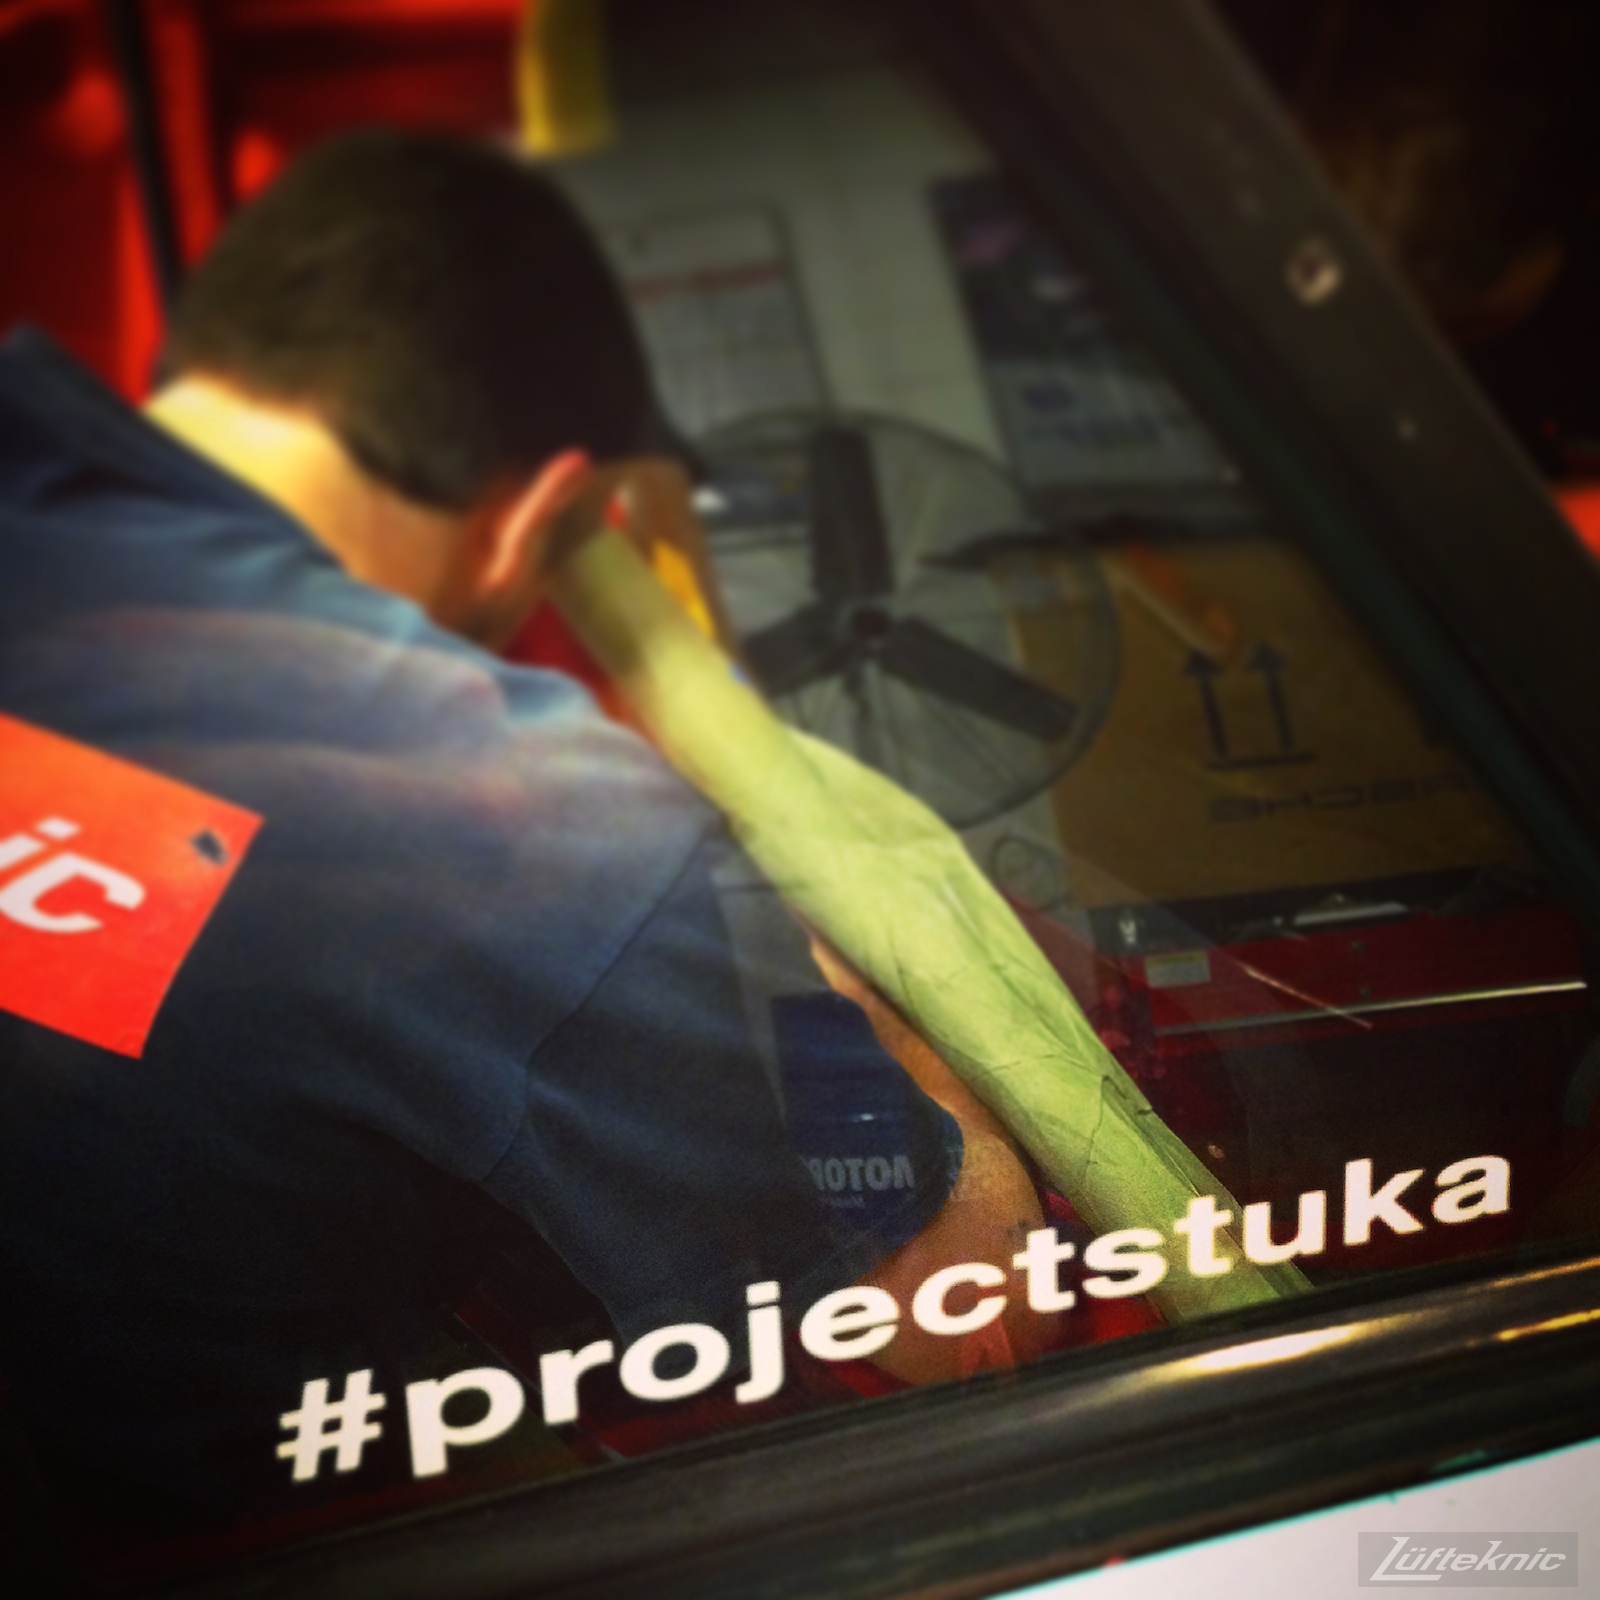 Close up picture of the #projectstuka hashtag sticker with a reflection of a lufteknic employee